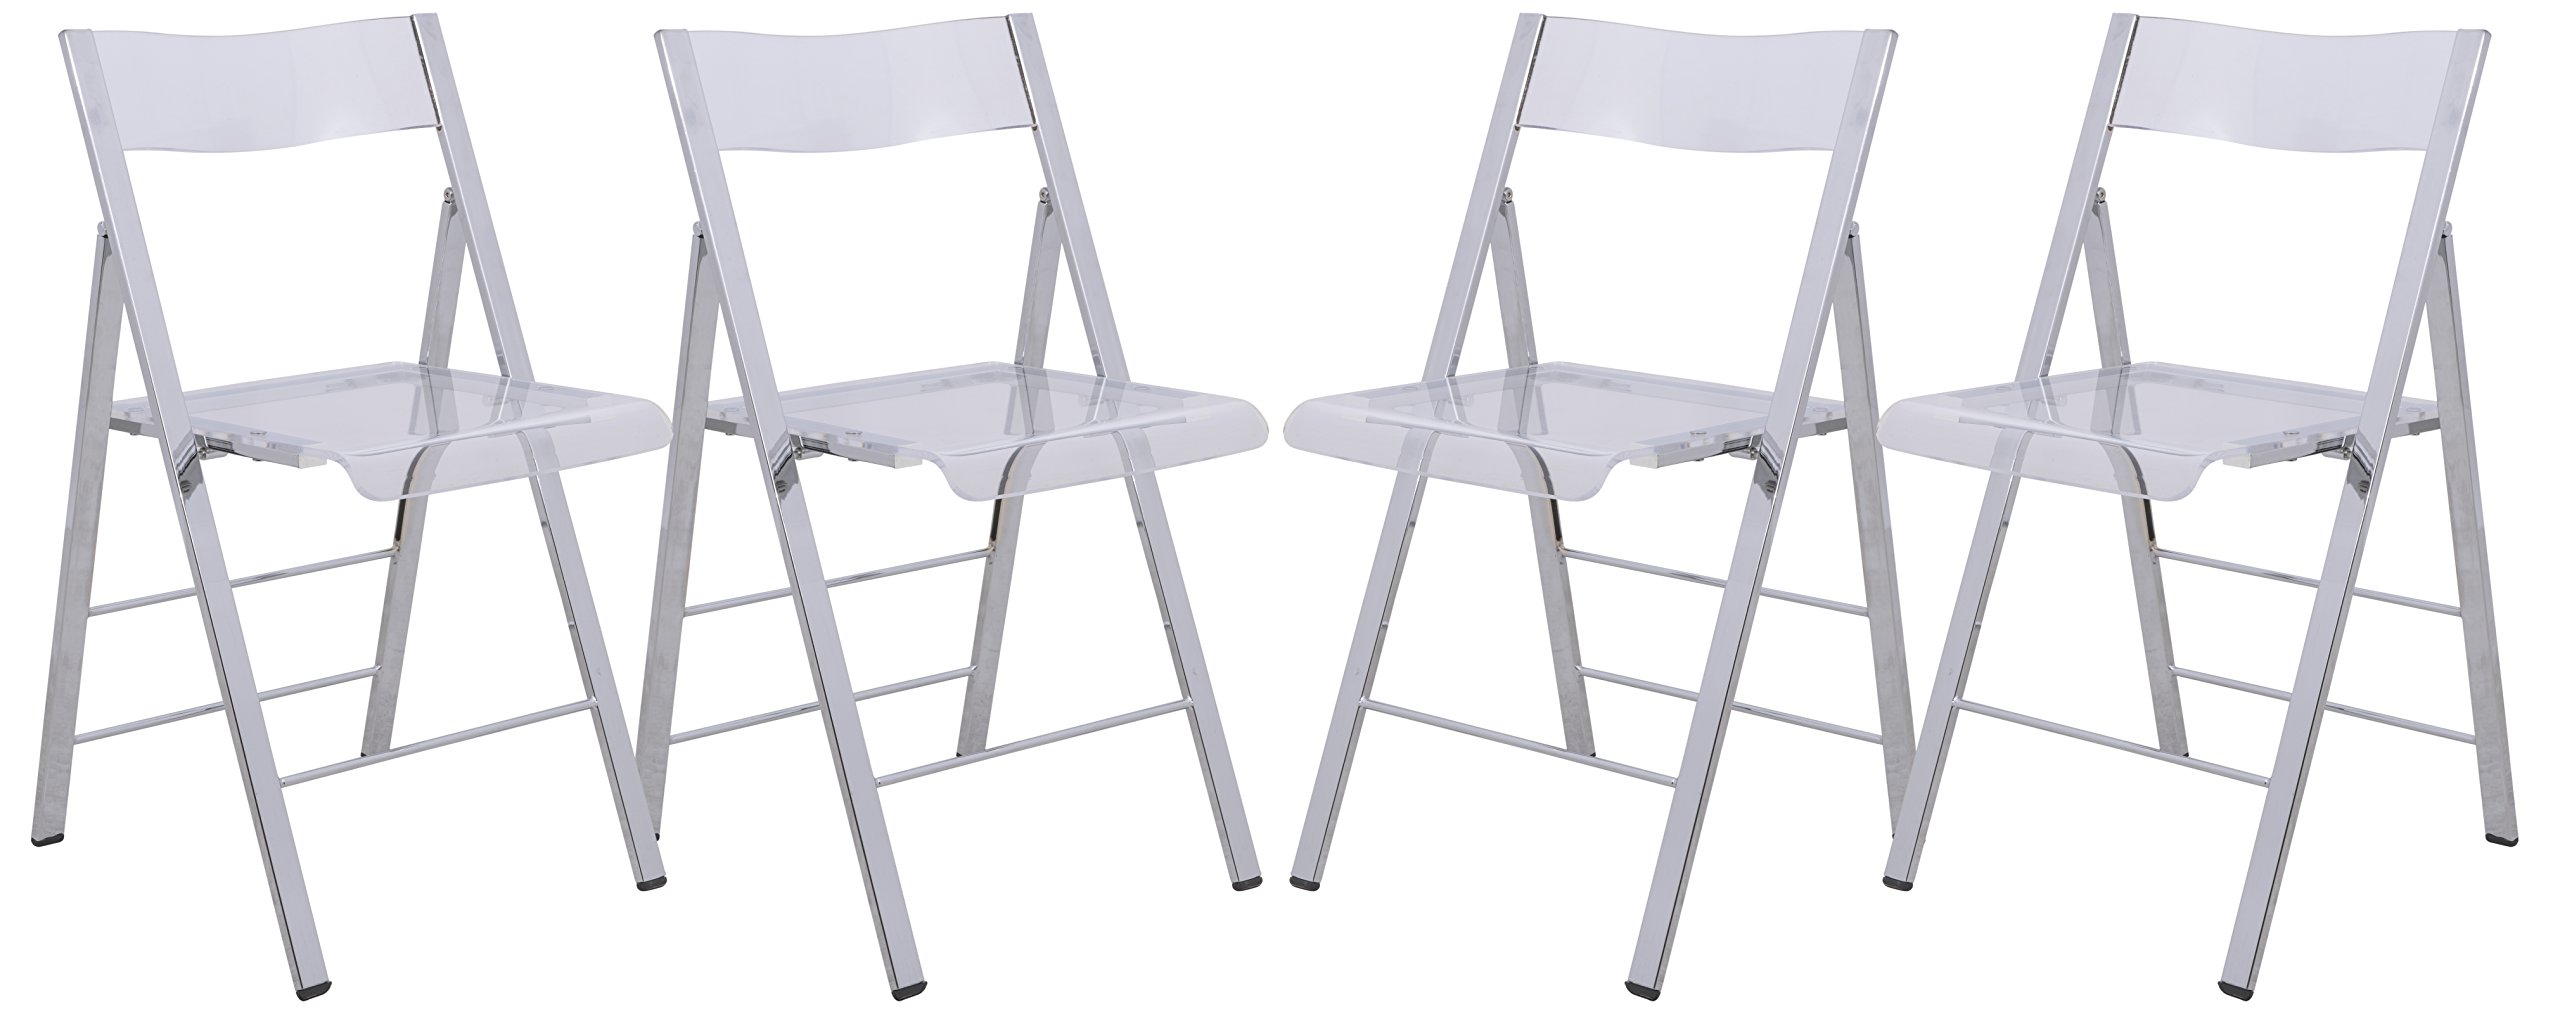 LeisureMod Milden Modern Acrylic Folding Chairs, Set of 4 (Clear)